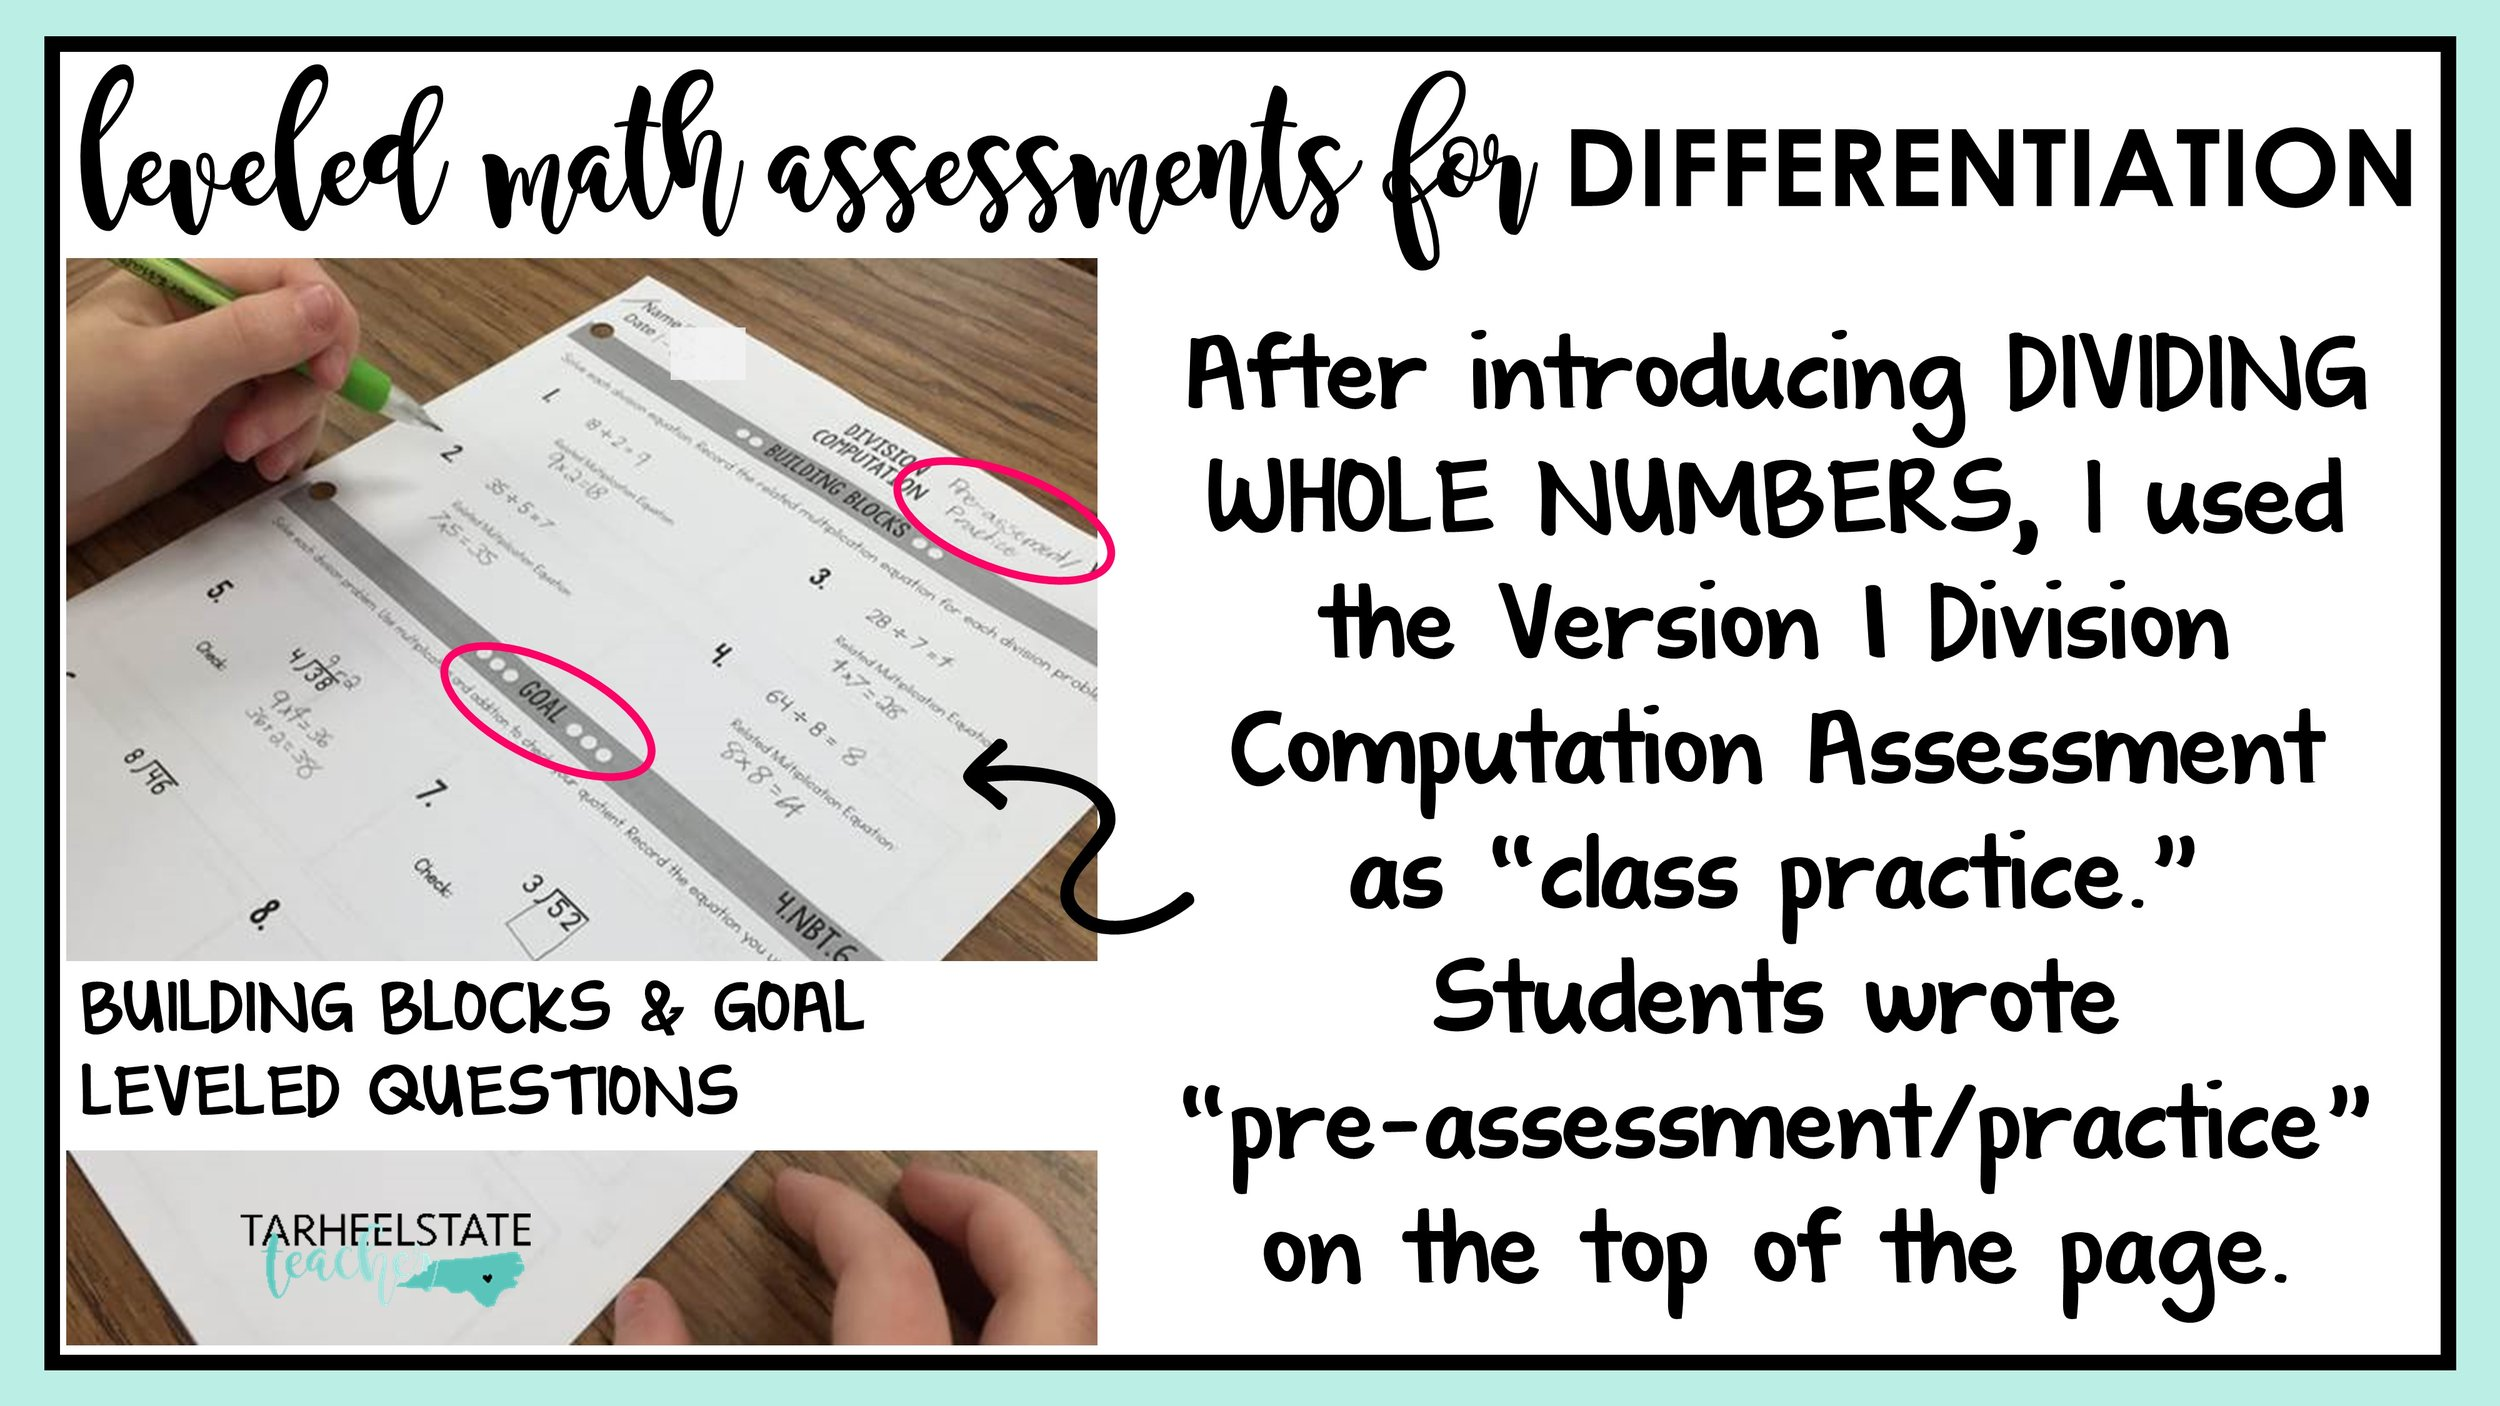 differentiating with leveled math resources 1.JPG